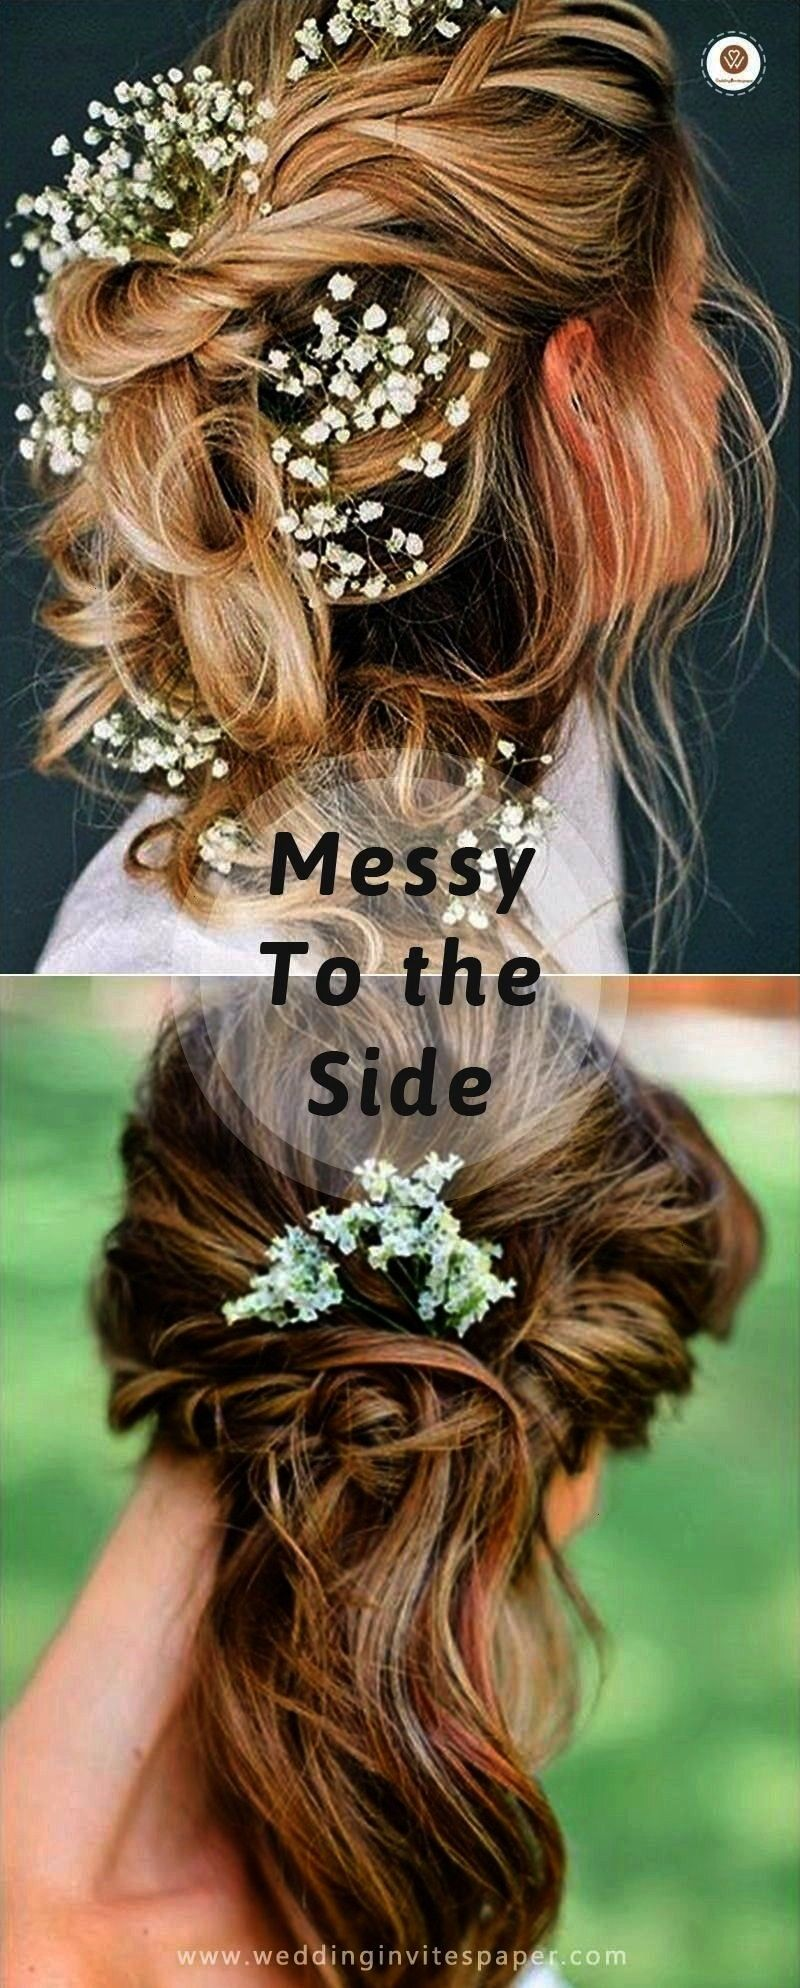 Wedding Hairstyles 17 Enchanted Rustic Wedding Hairstyles 17 Enchanted Rustic Wedding HairstylesLove natural styles Dont want to change yout curls to flat Want to make yo...